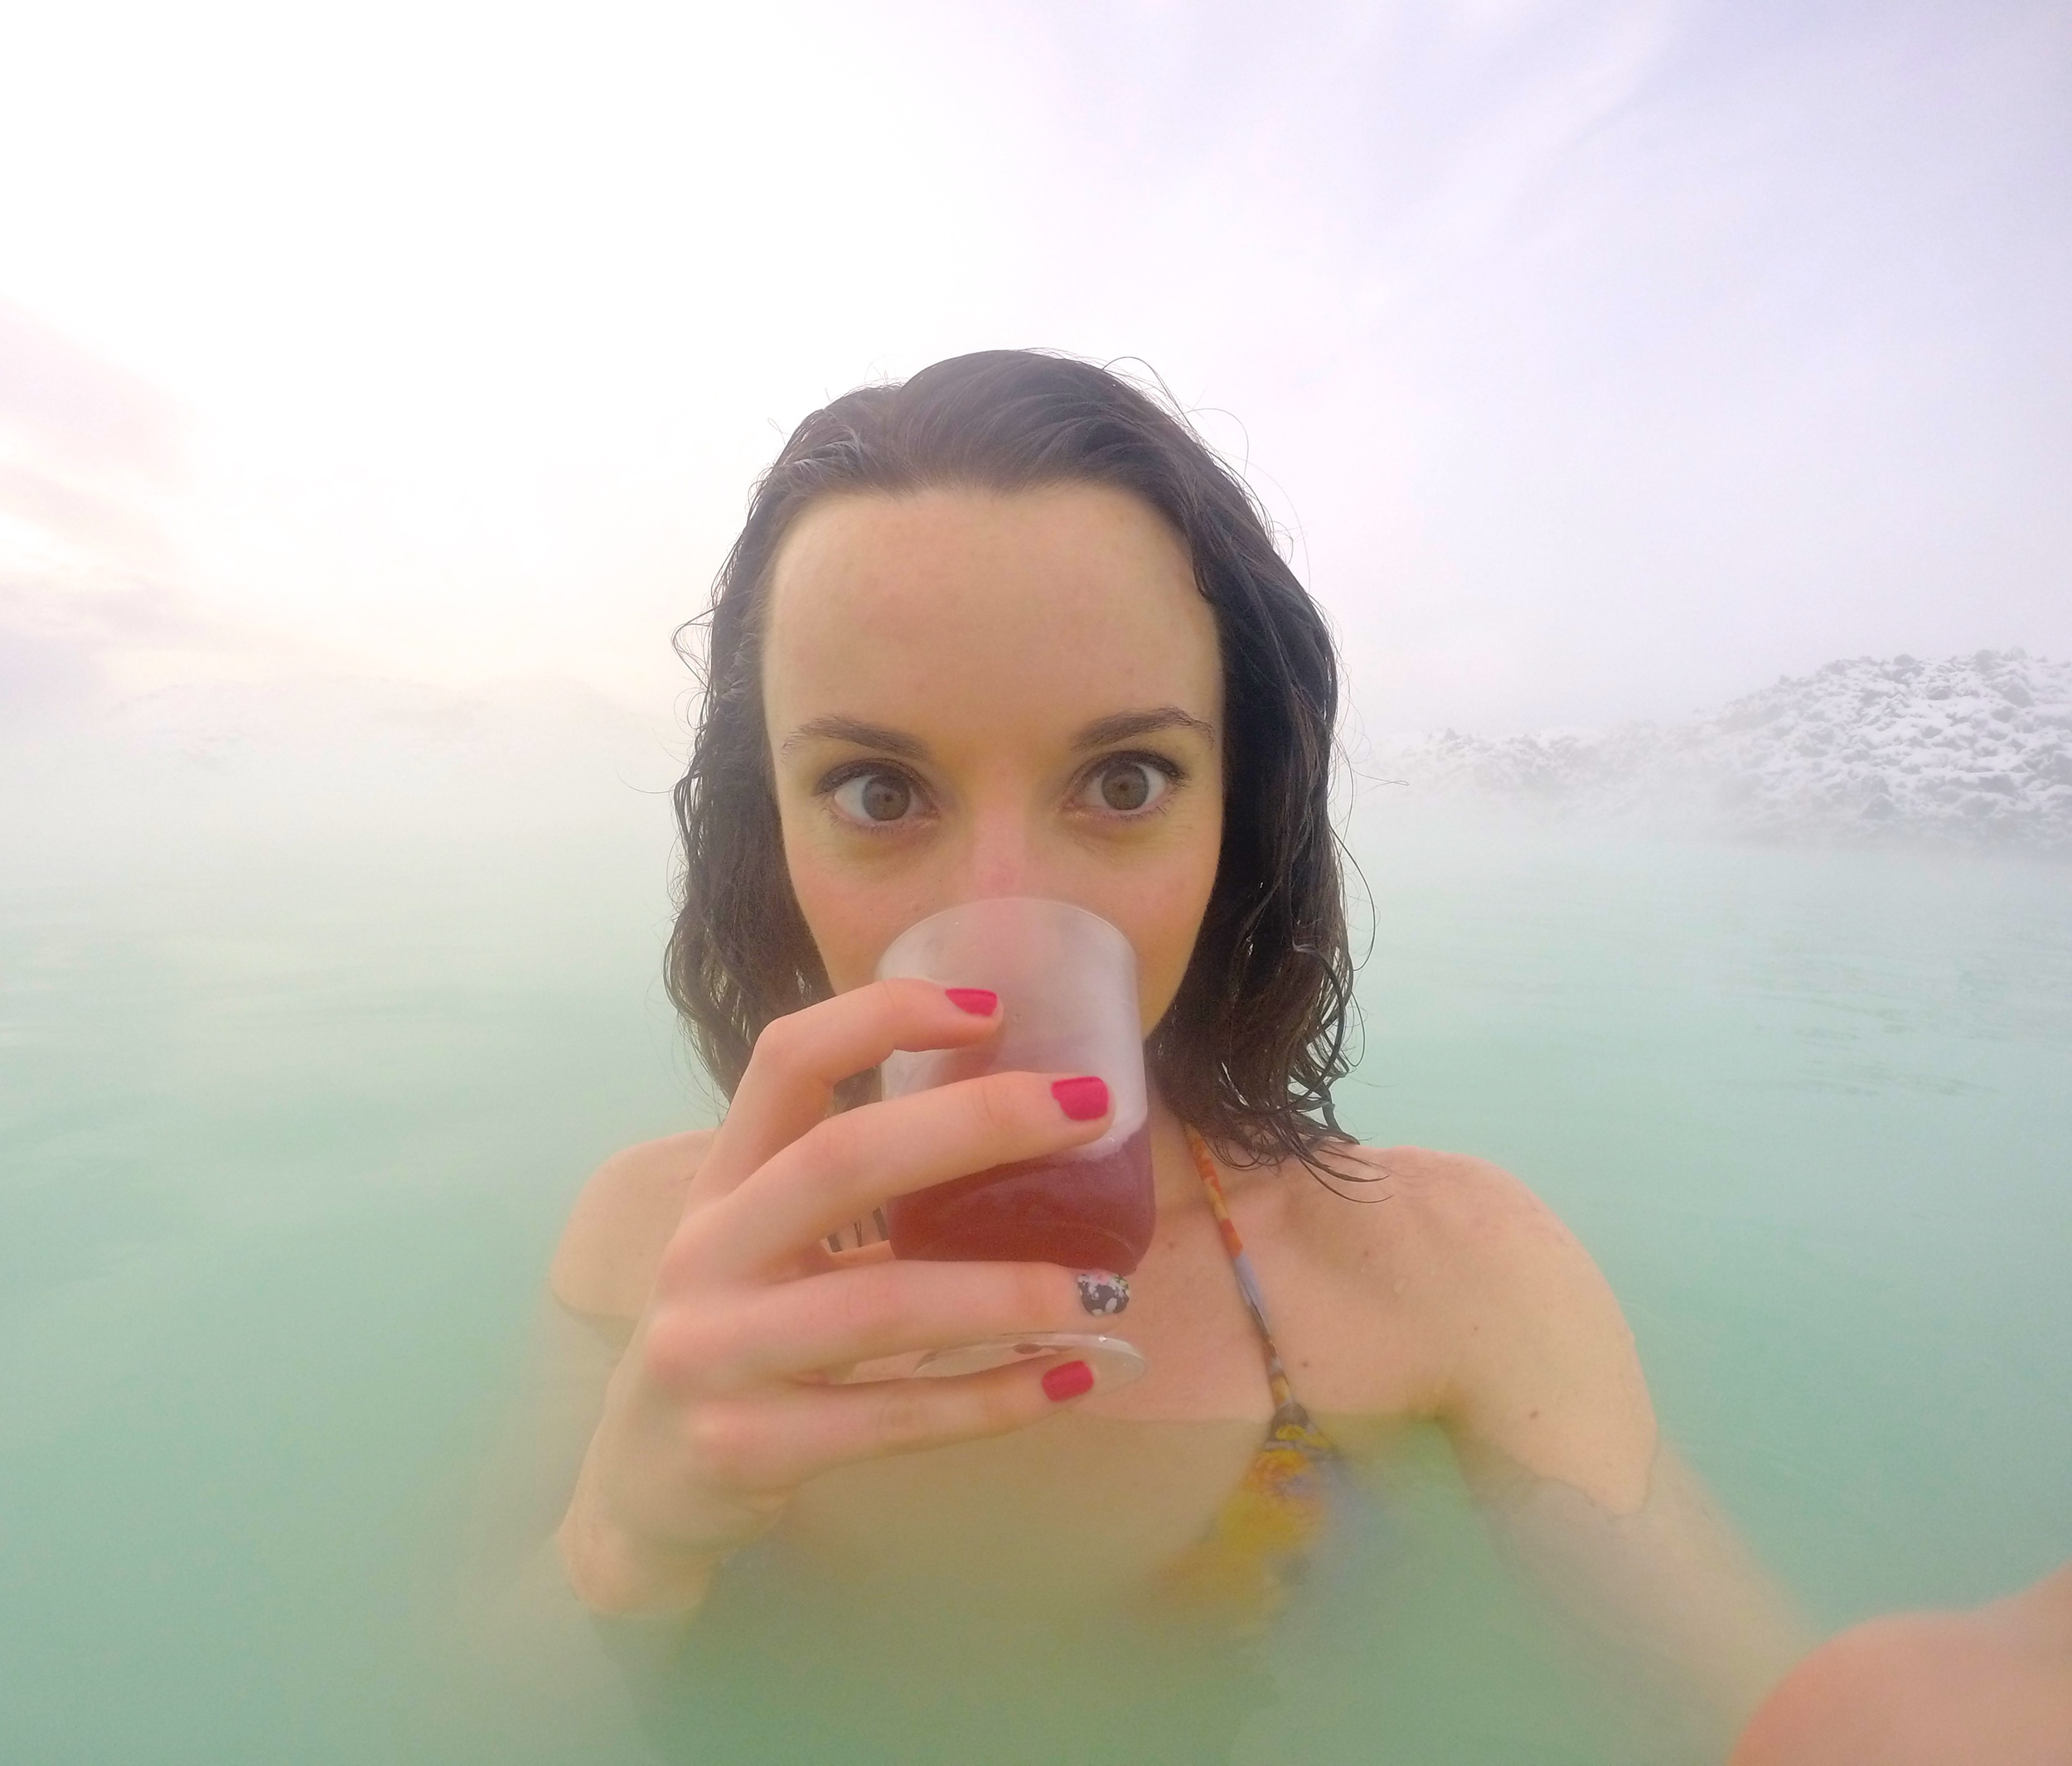 BLUE LAGOON EXPERIENCE